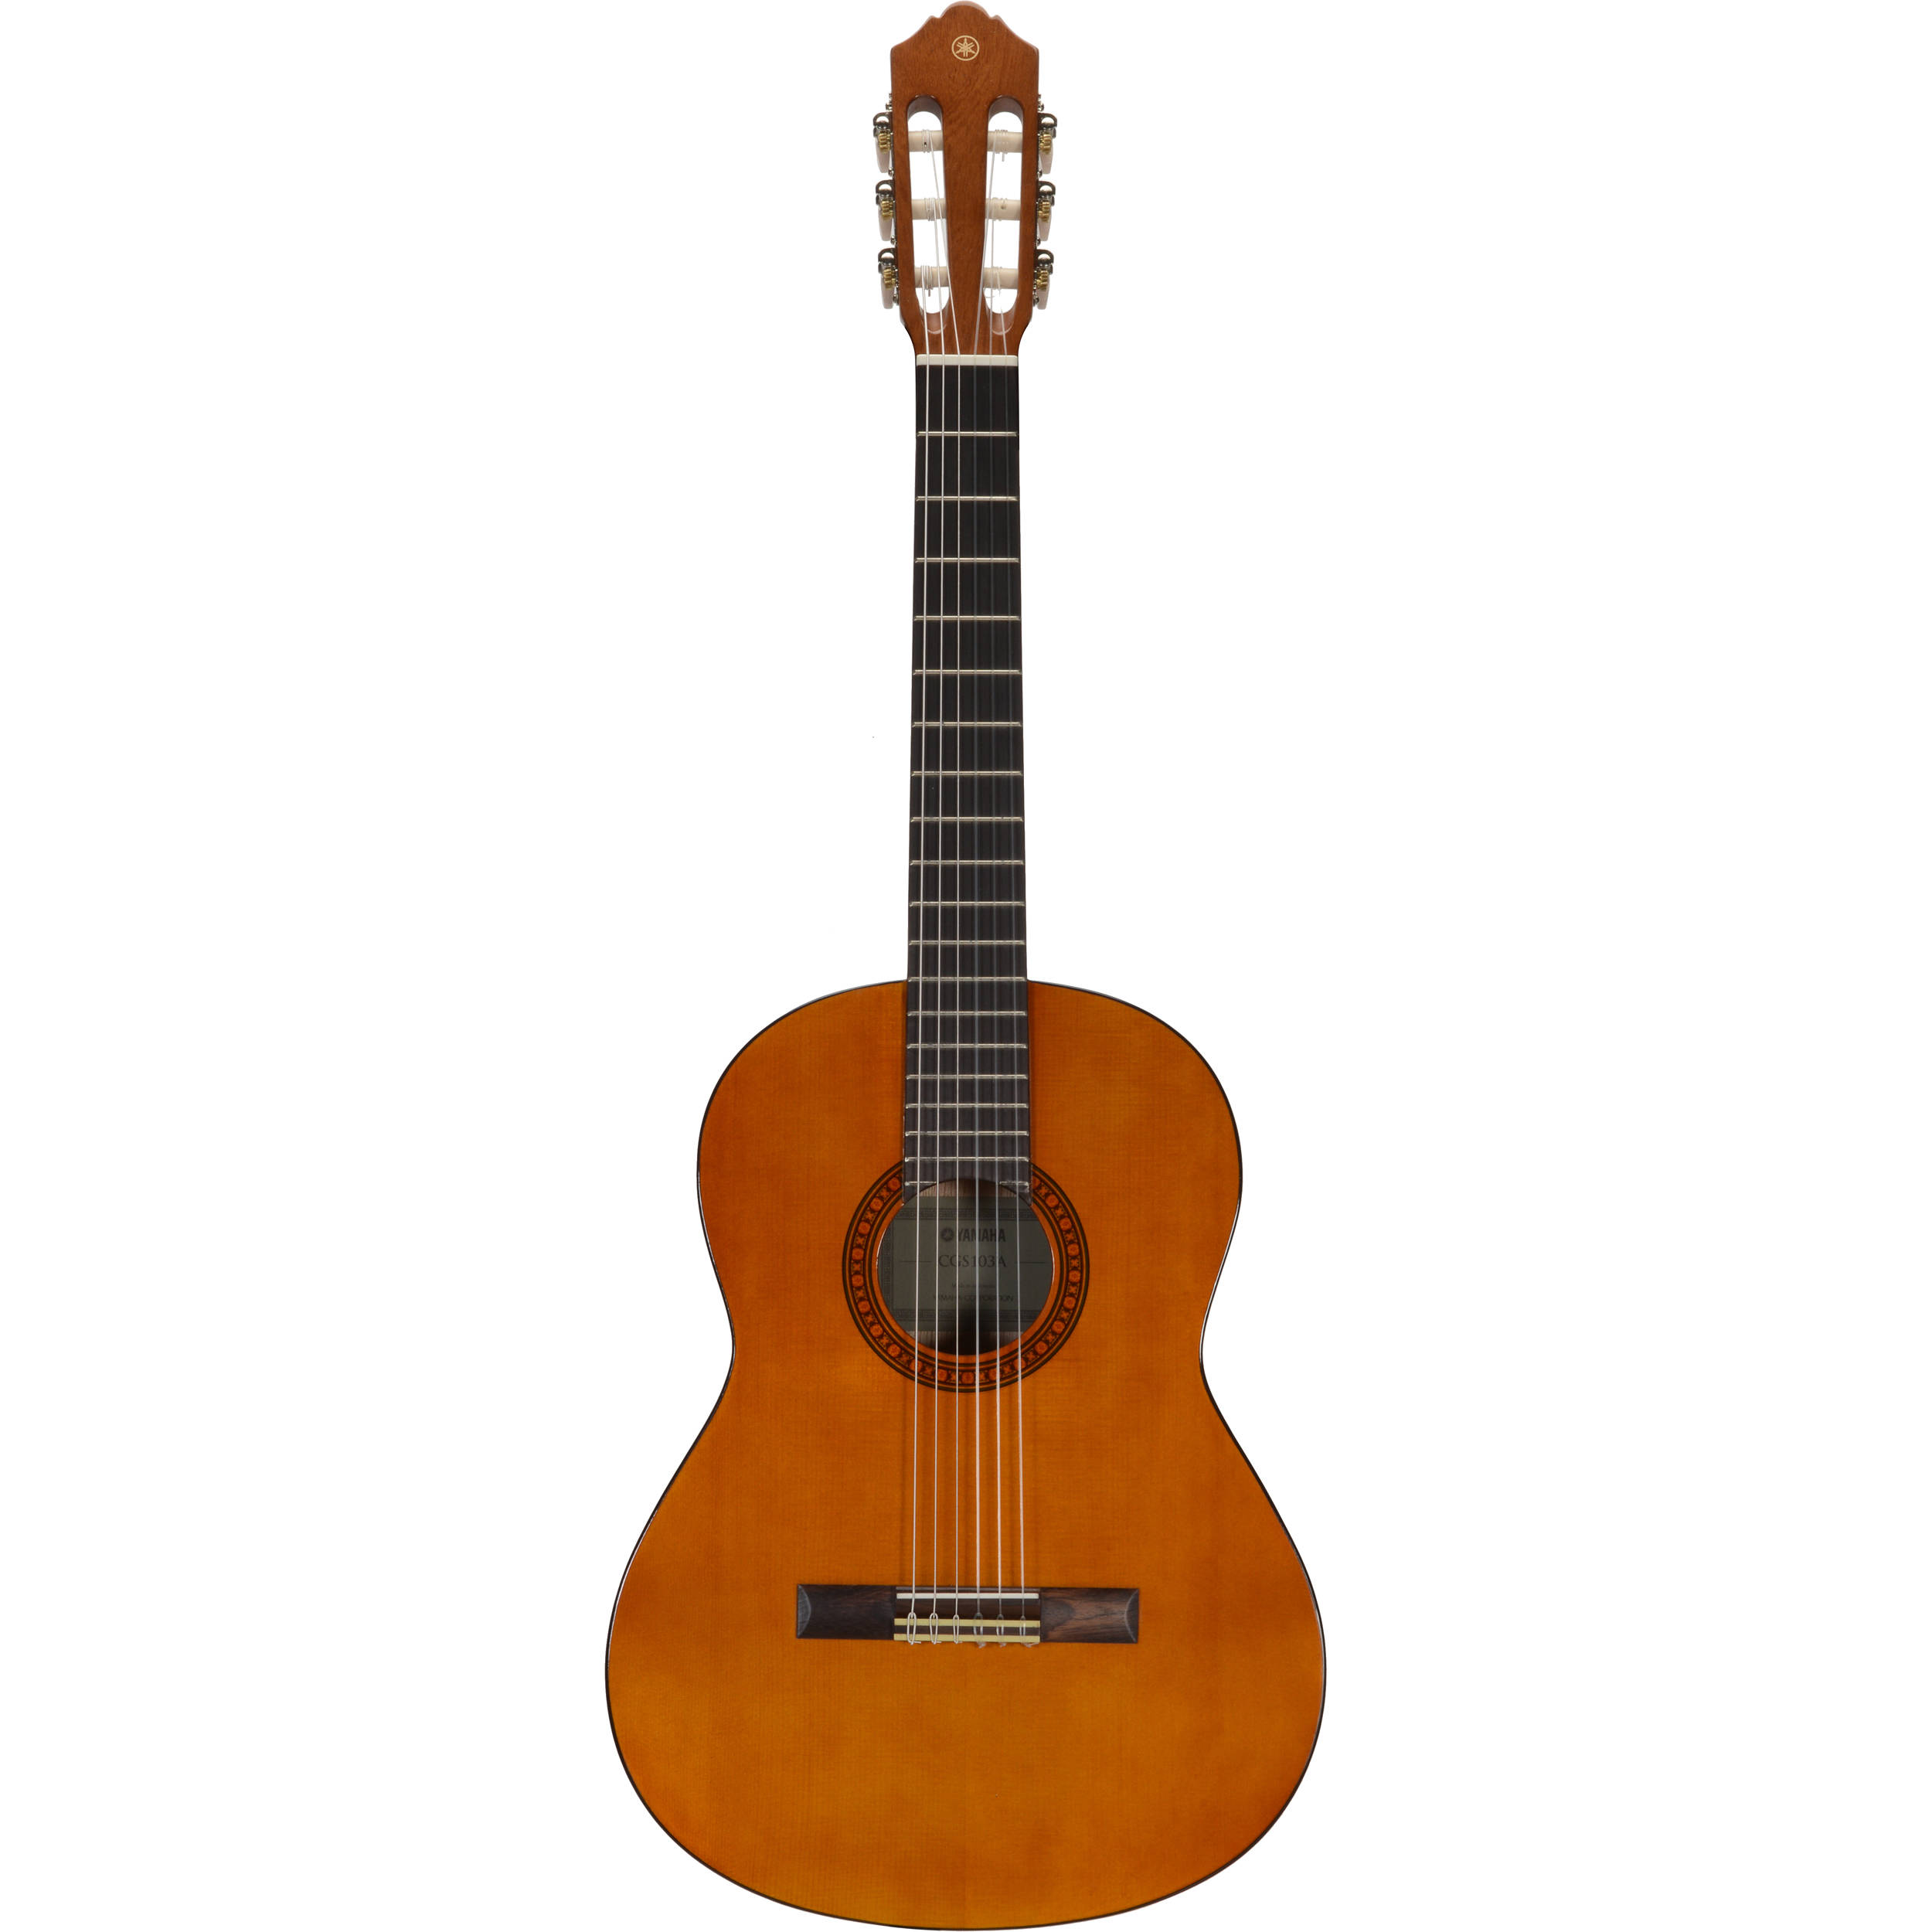 yamaha cgs103aii 3 4 size nylon string classical guitar. Black Bedroom Furniture Sets. Home Design Ideas